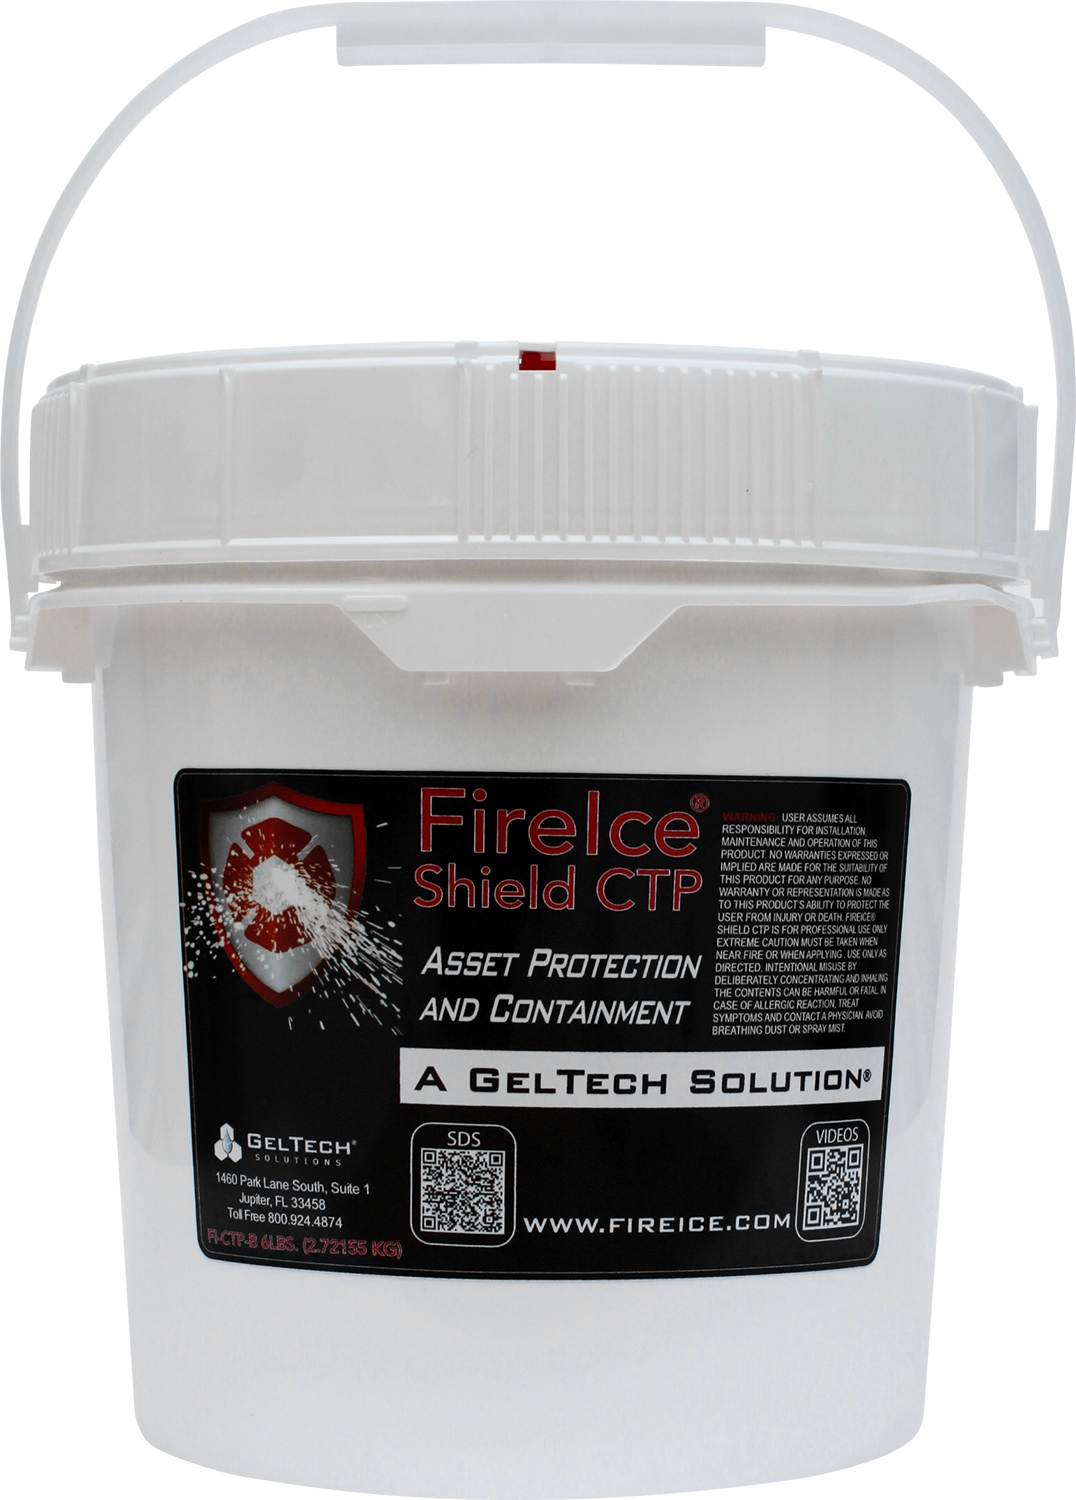 2016-05-24_FireIce Shield CTP Bucket_IMG_1305